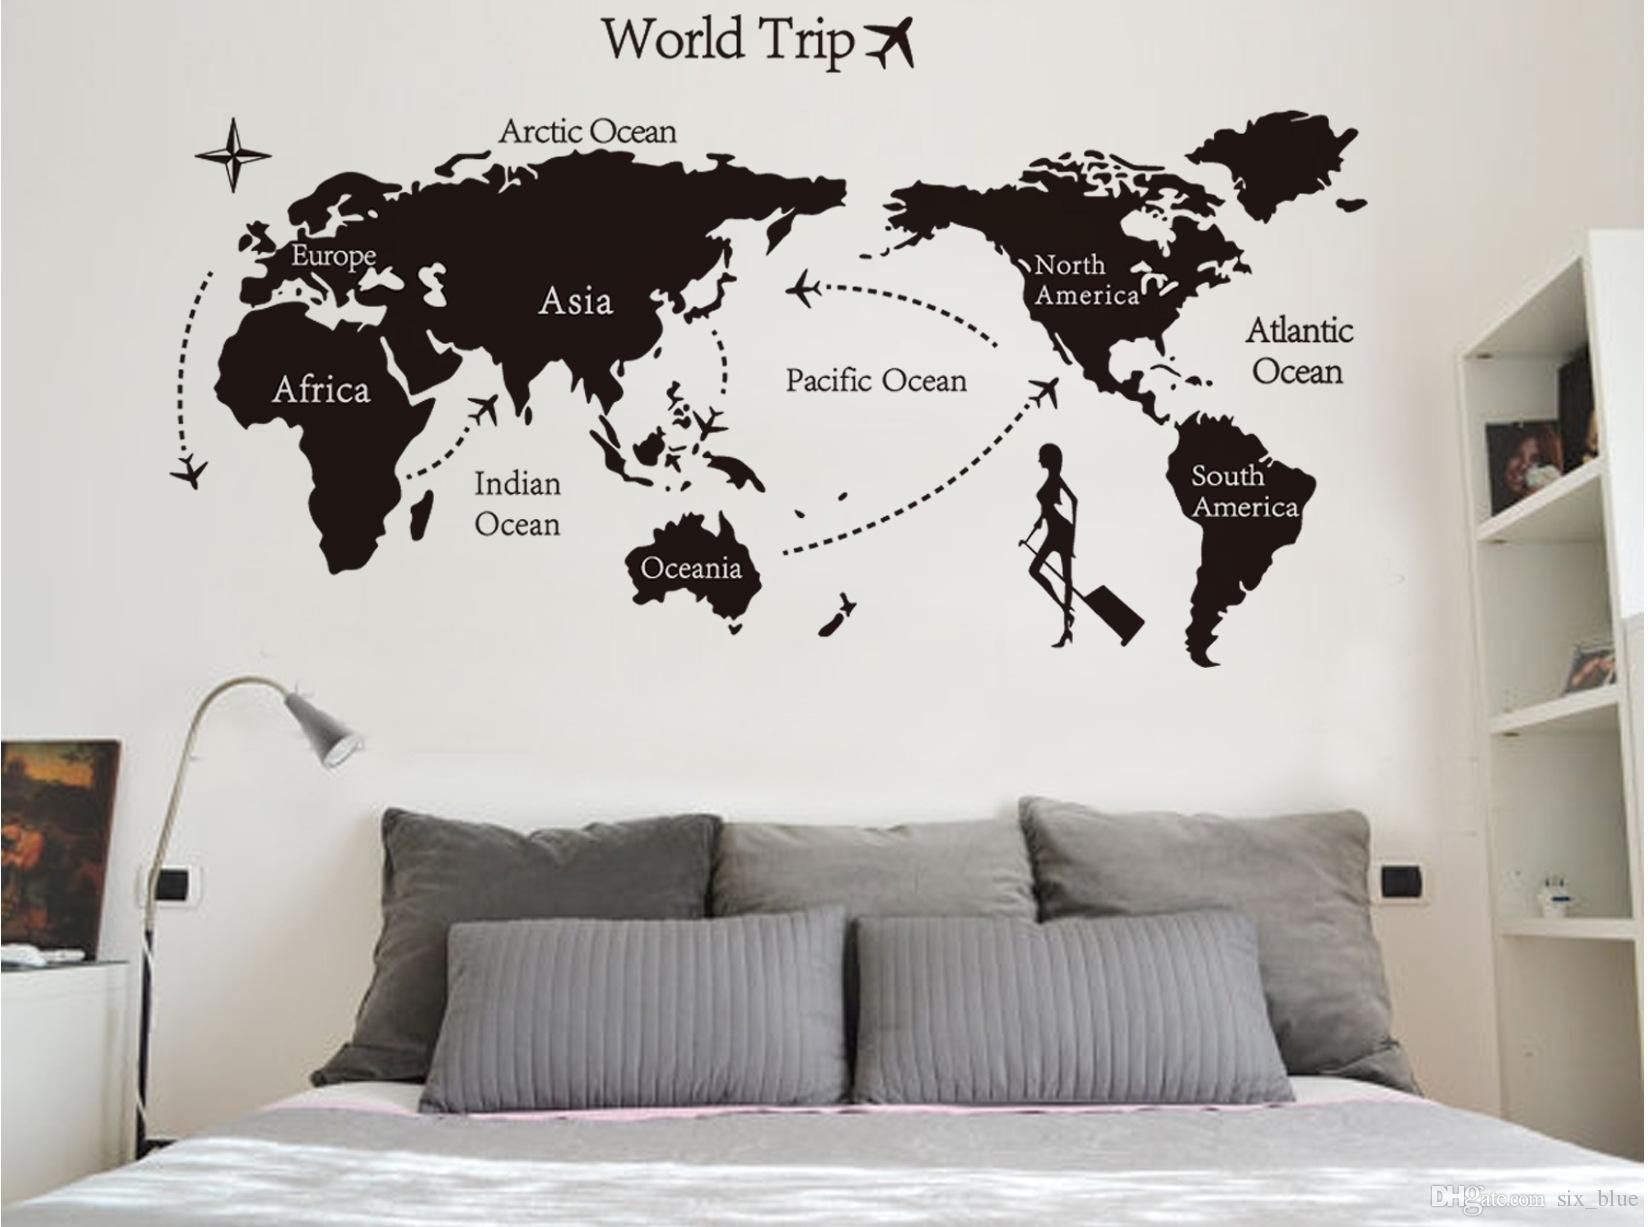 World Map Decorations Colorful Letters World Map Wall Stickers Living Room Home Decorations Creative Pvc Vinyl Decal Mural Art Diy Wall Sticker